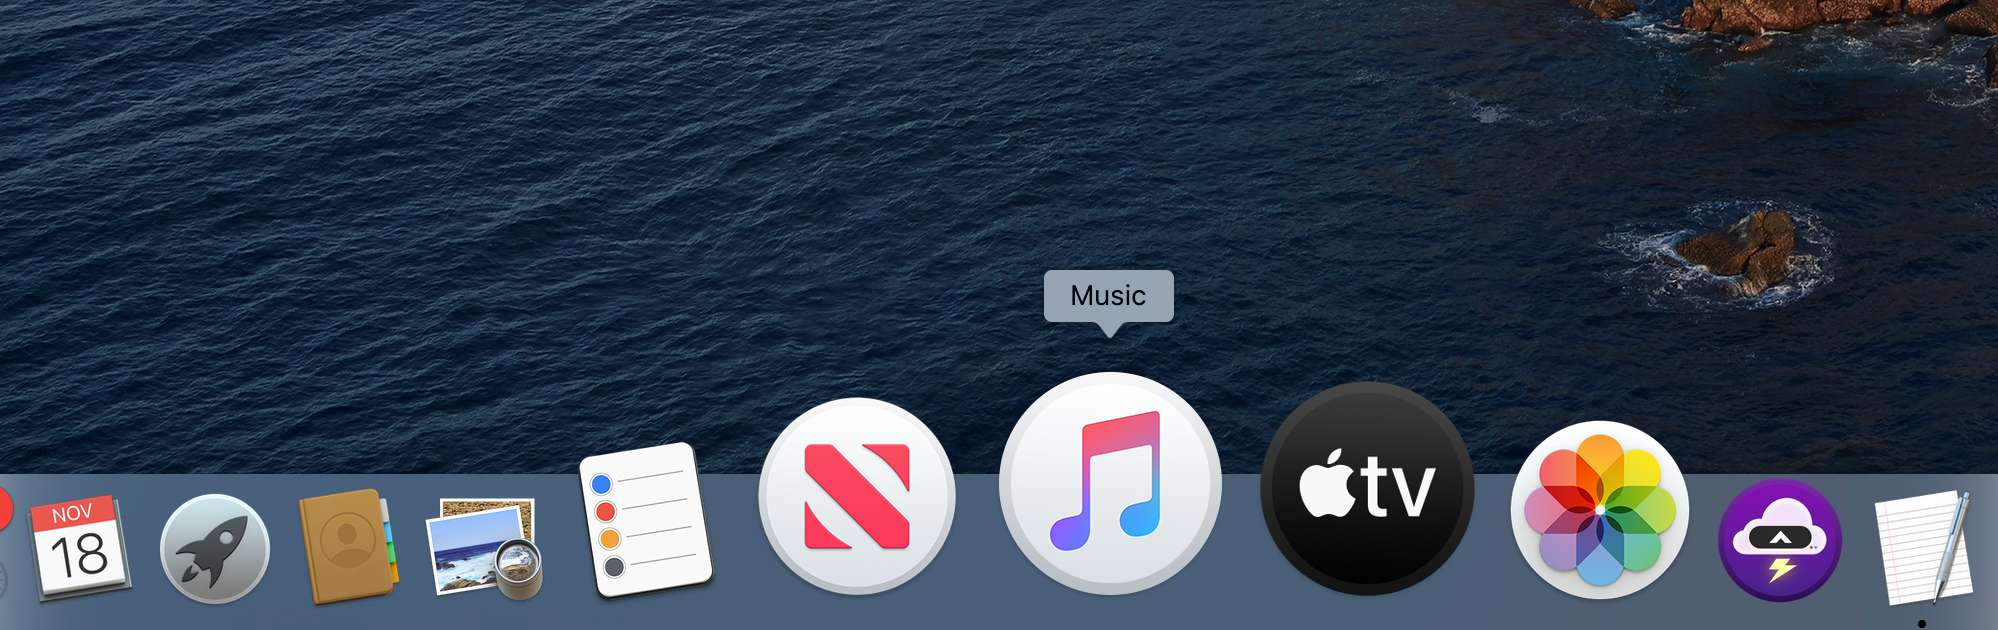 Music app icon in Catalina Dock